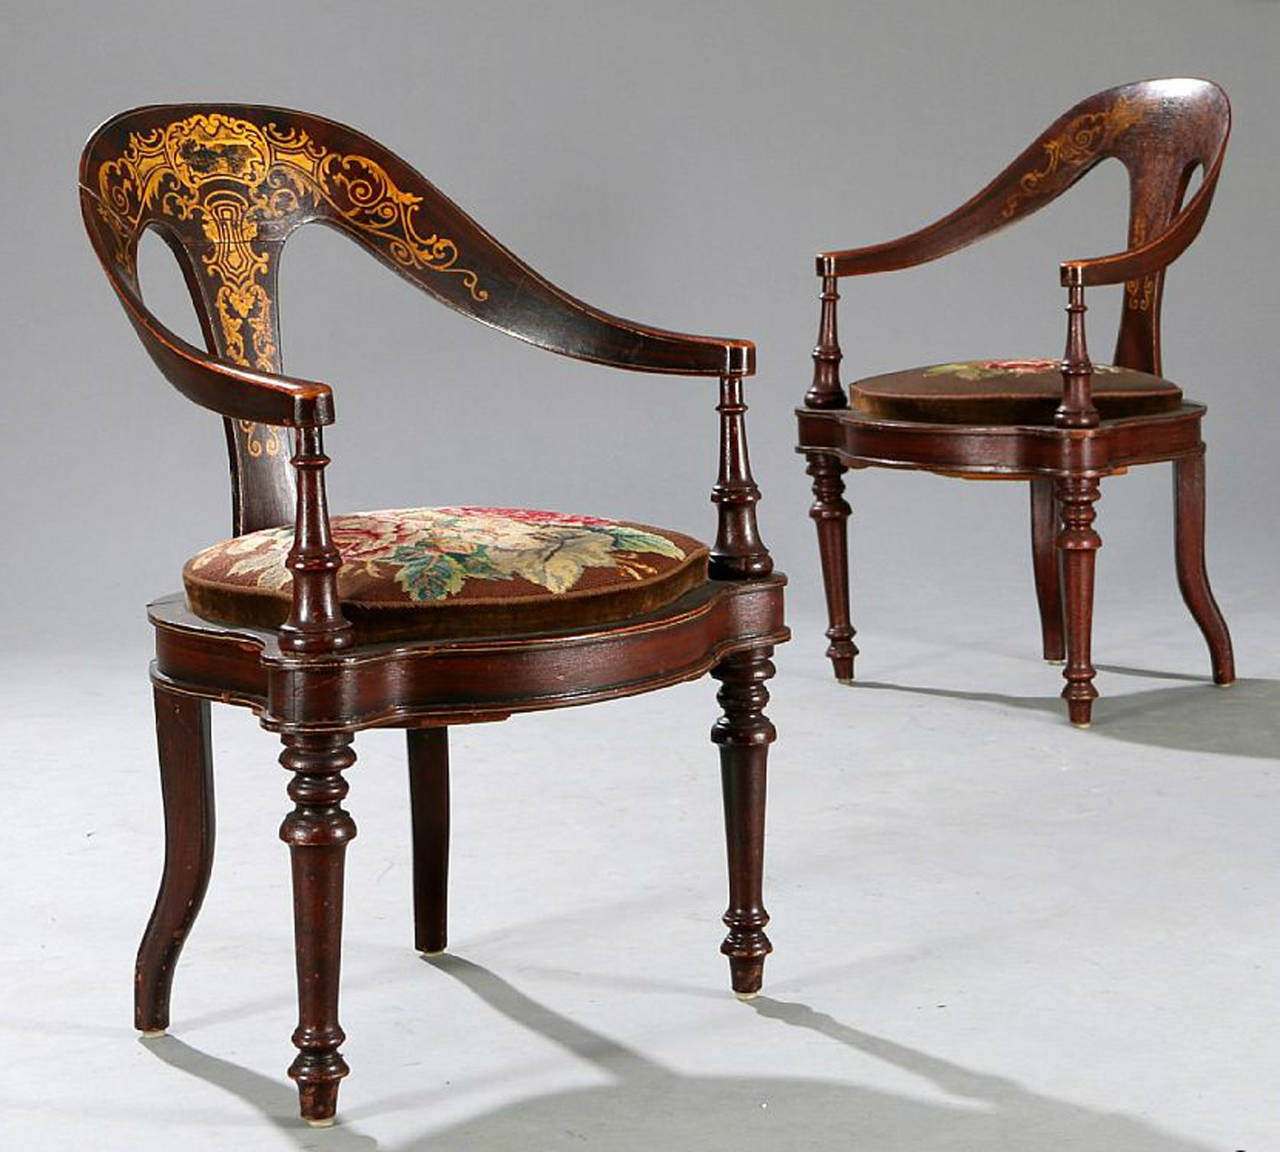 A pair of Danish mid-19th century spoon back chairs. The back splats and arms with painted decoration. The arms ending in turned front supports on molded and shaped needle-point upholstered seats raised on front turned legs and out-curved back legs.